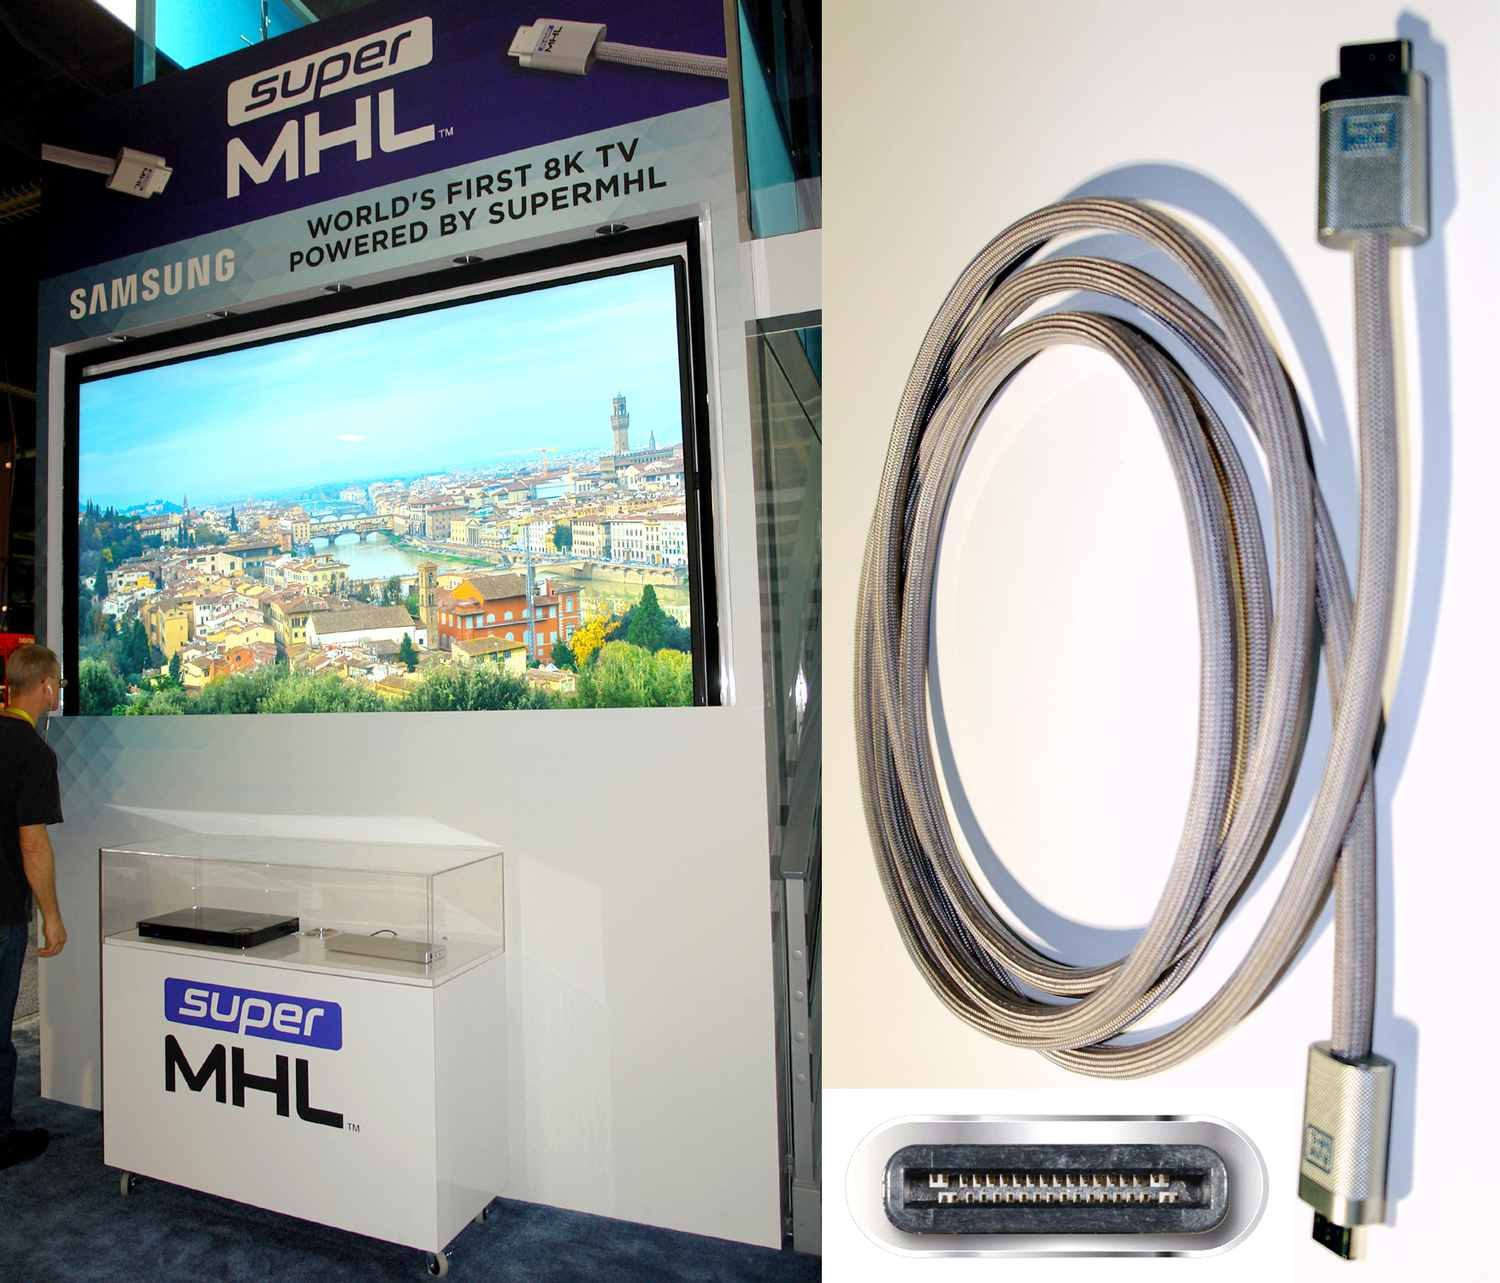 super-mhl-demo-with-cable-ces-2015.jpg